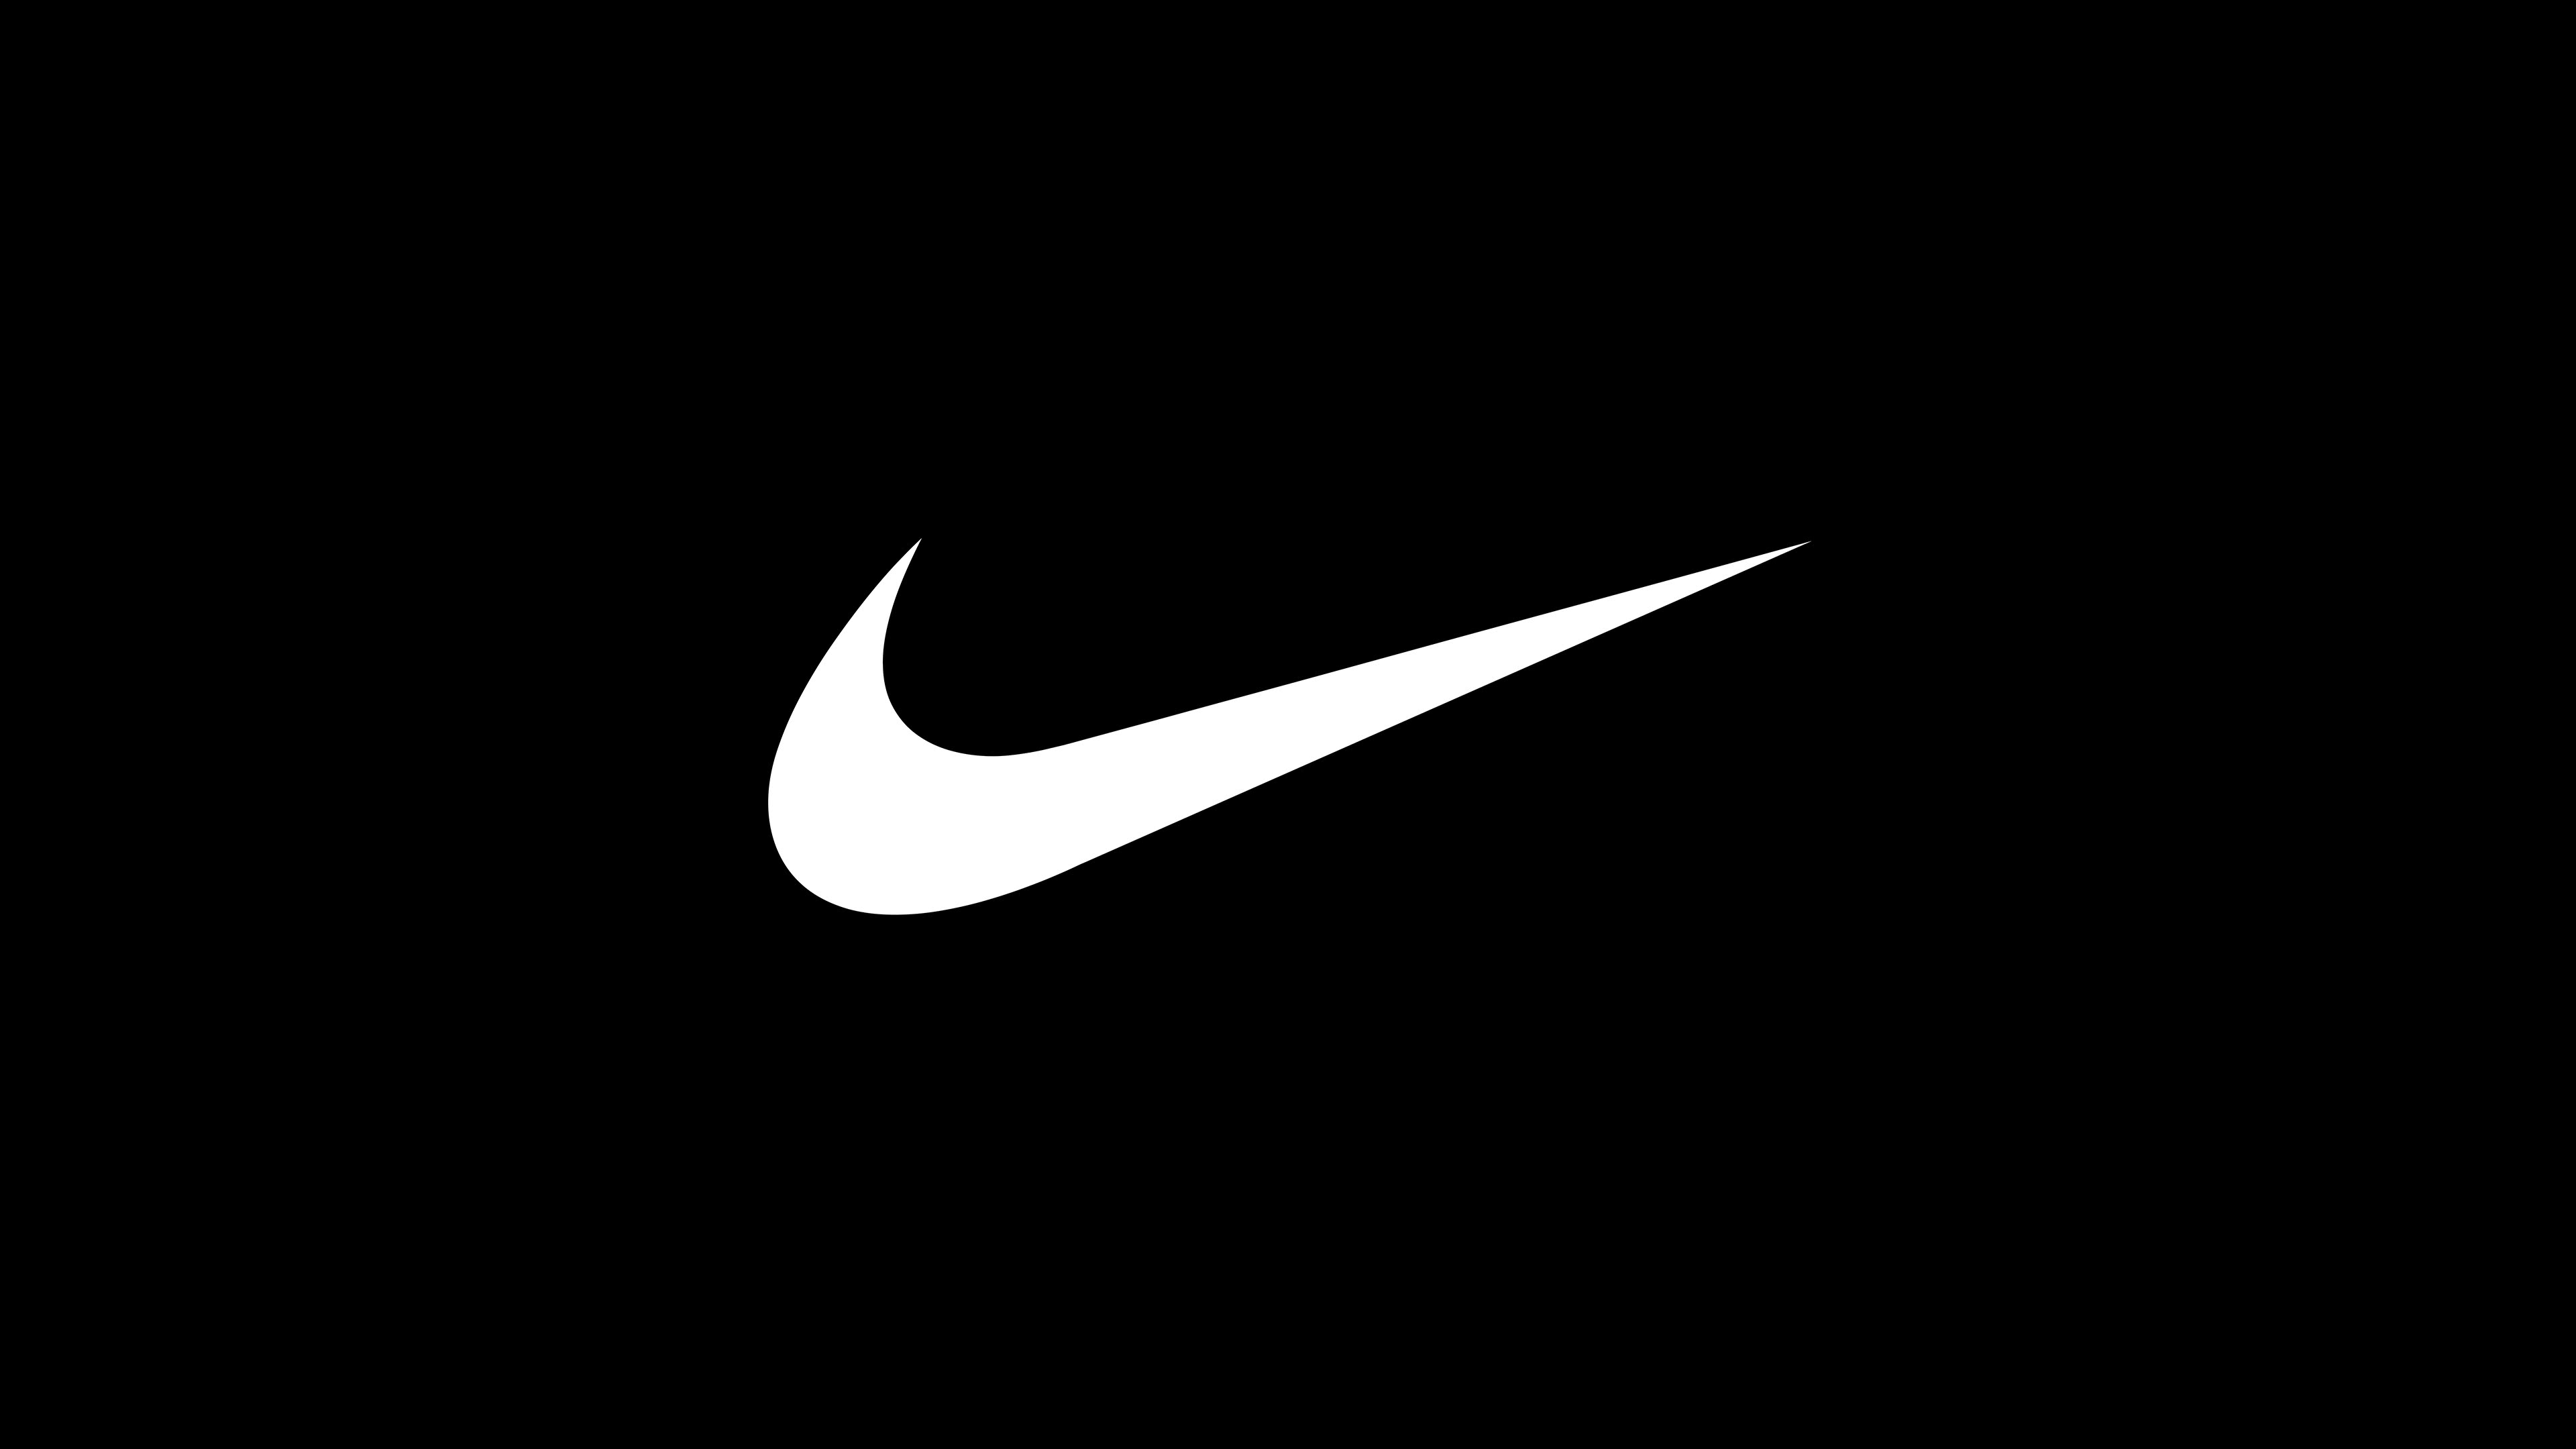 Nike 4k Wallpapers Top Free Nike 4k Backgrounds Wallpaperaccess